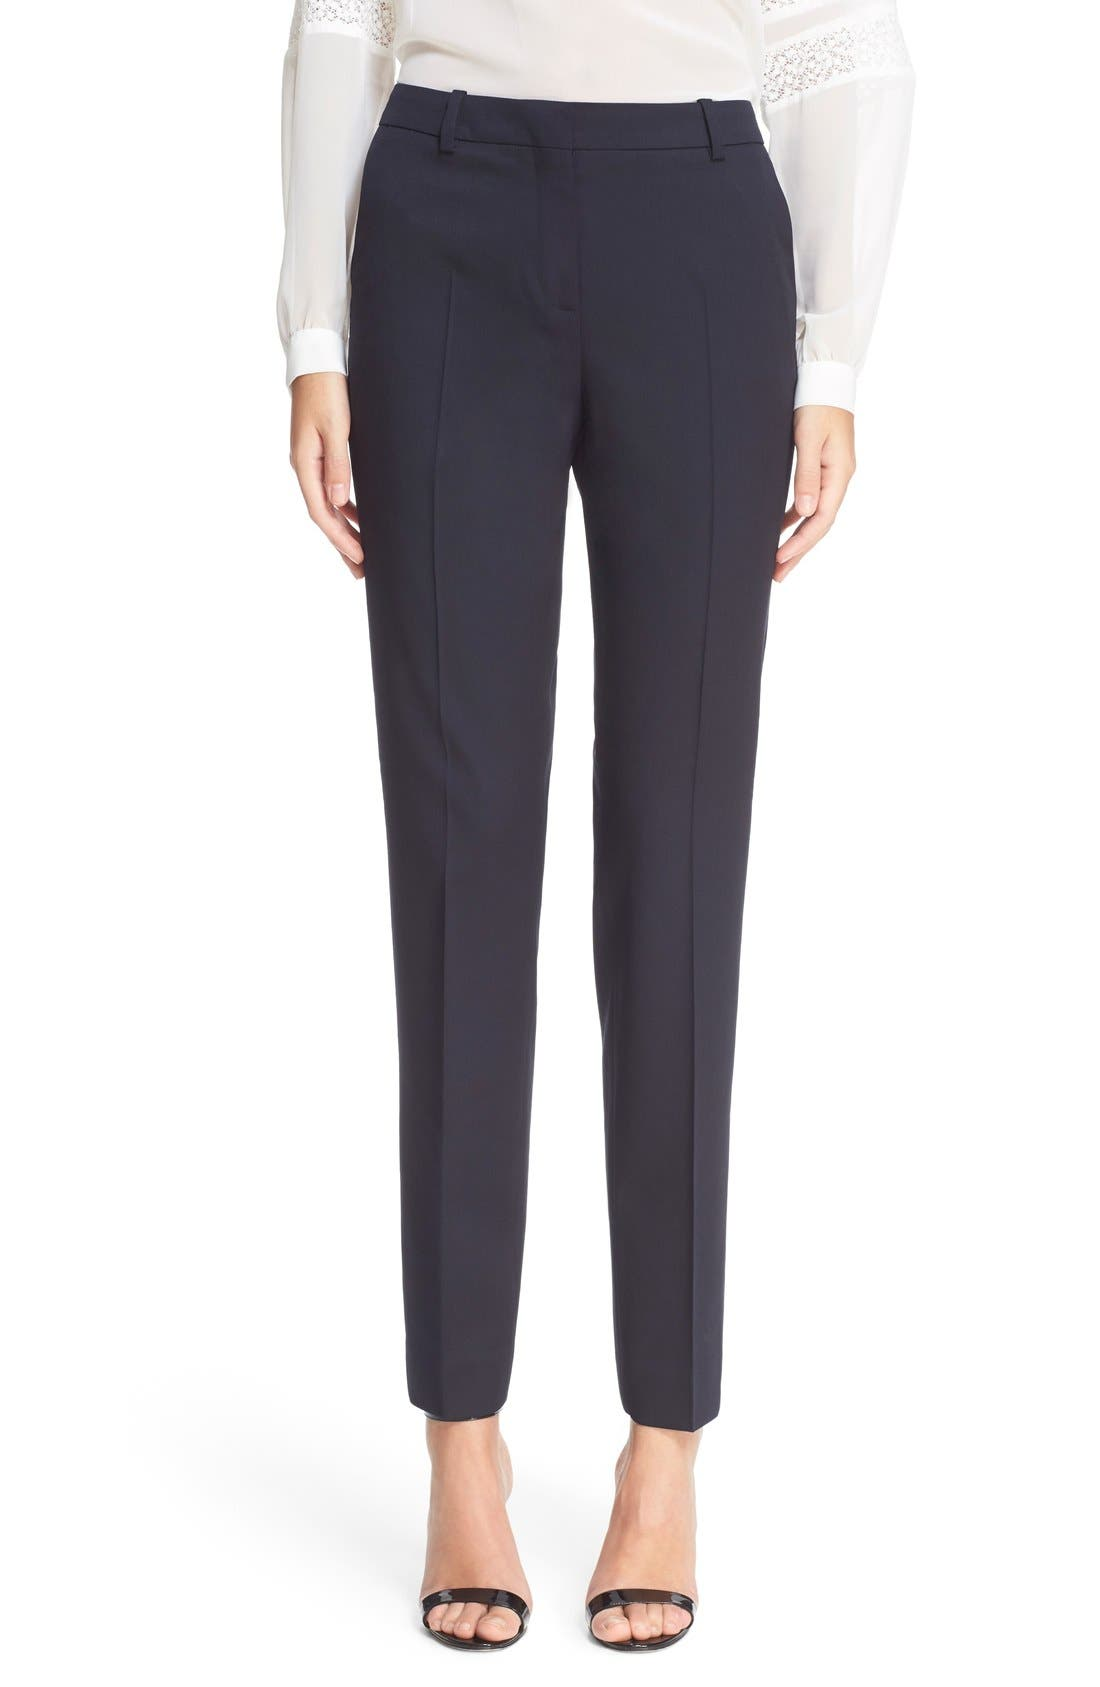 The Kooples 'Timeless' Stretch Wool Trousers